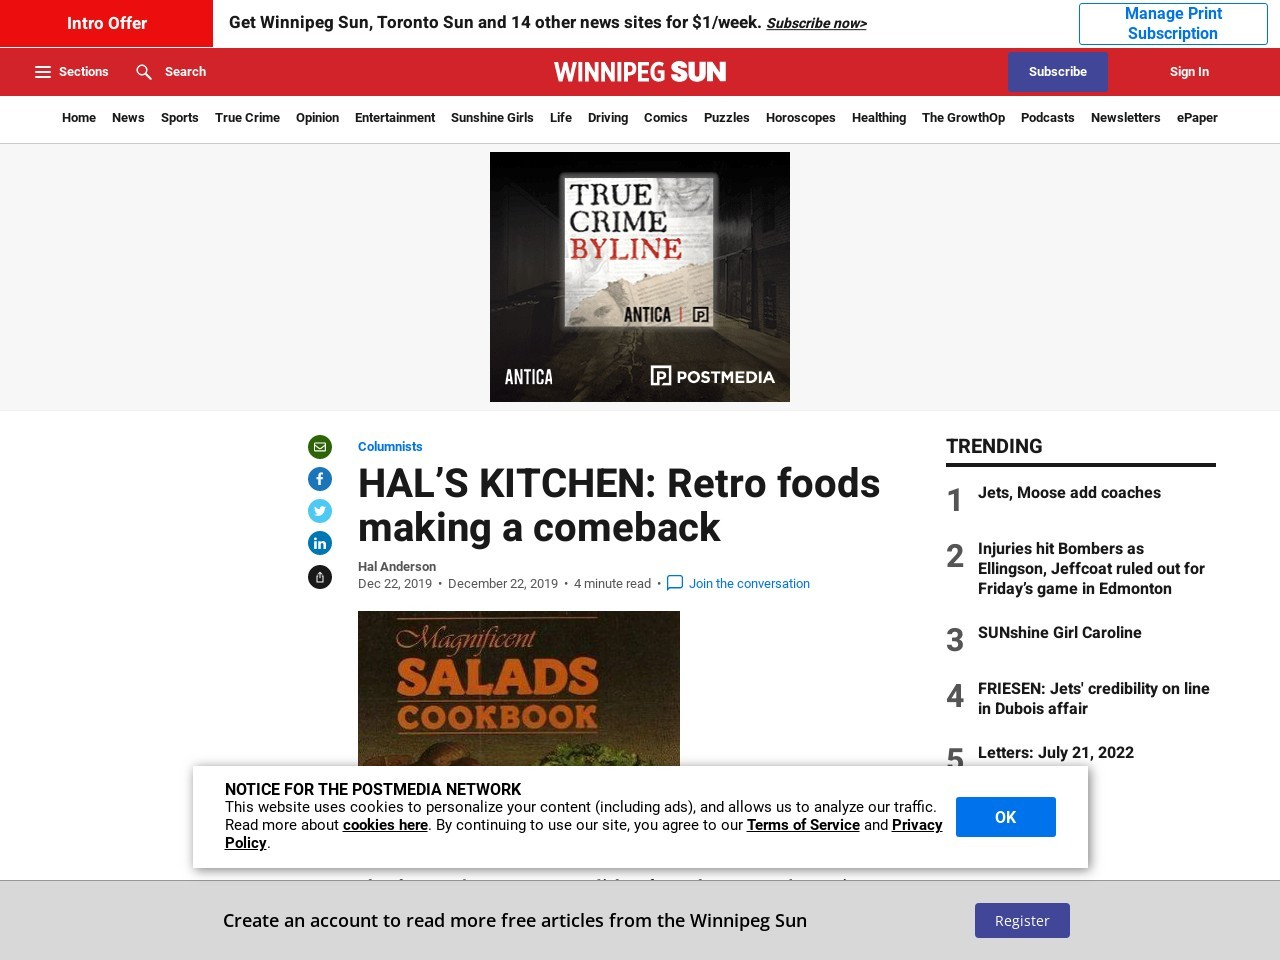 HAL'S KITCHEN: Retro foods making a comeback